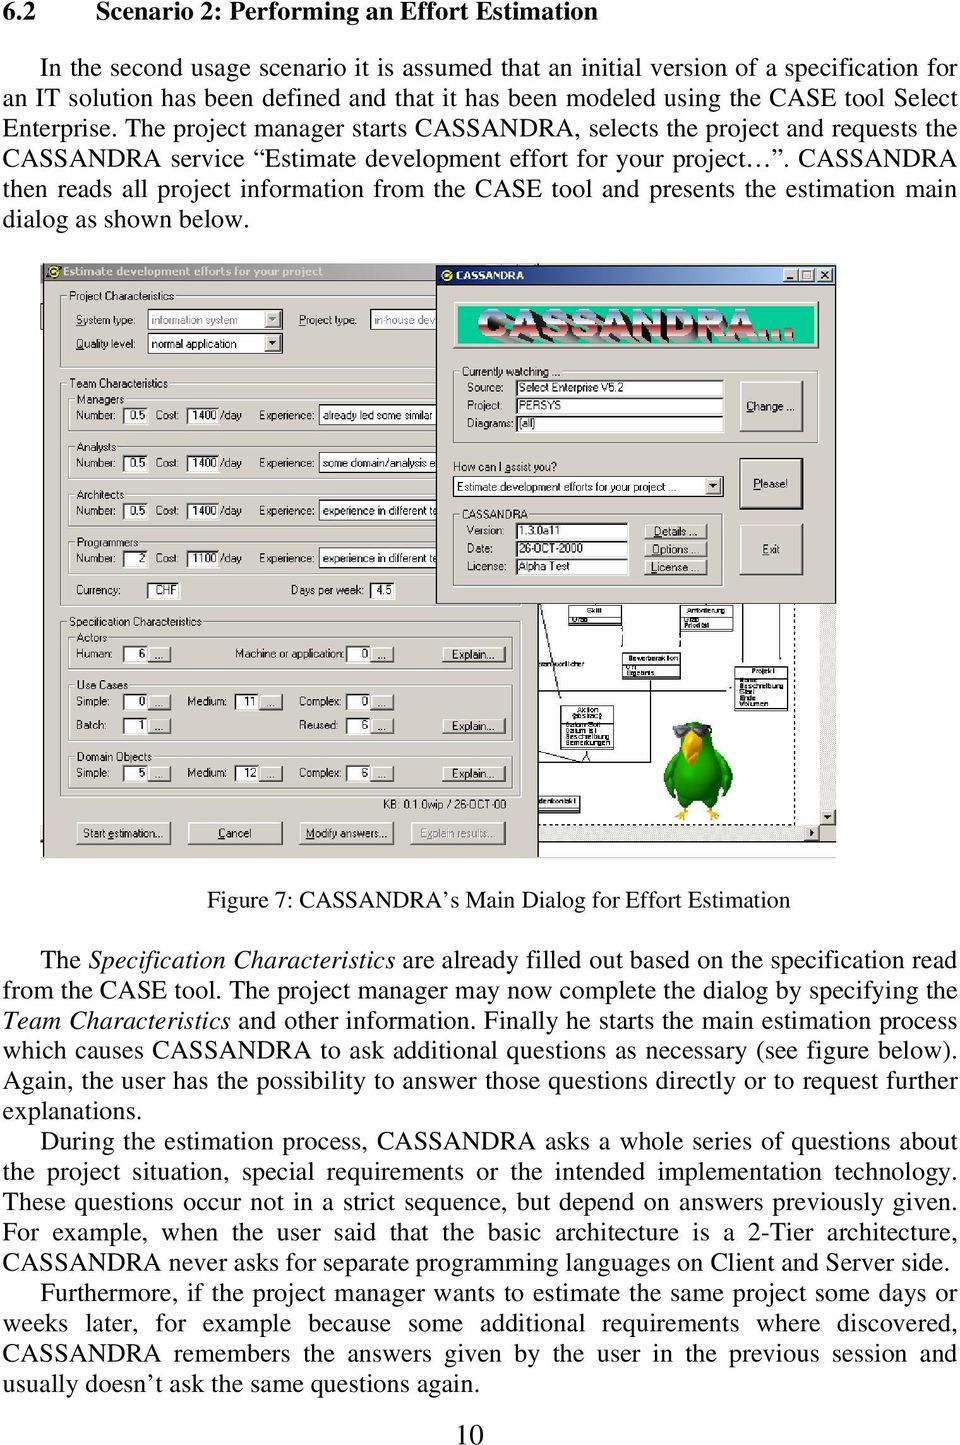 CASSANDRA then reads all project information from the CASE tool and presents the estimation main dialog as shown below.